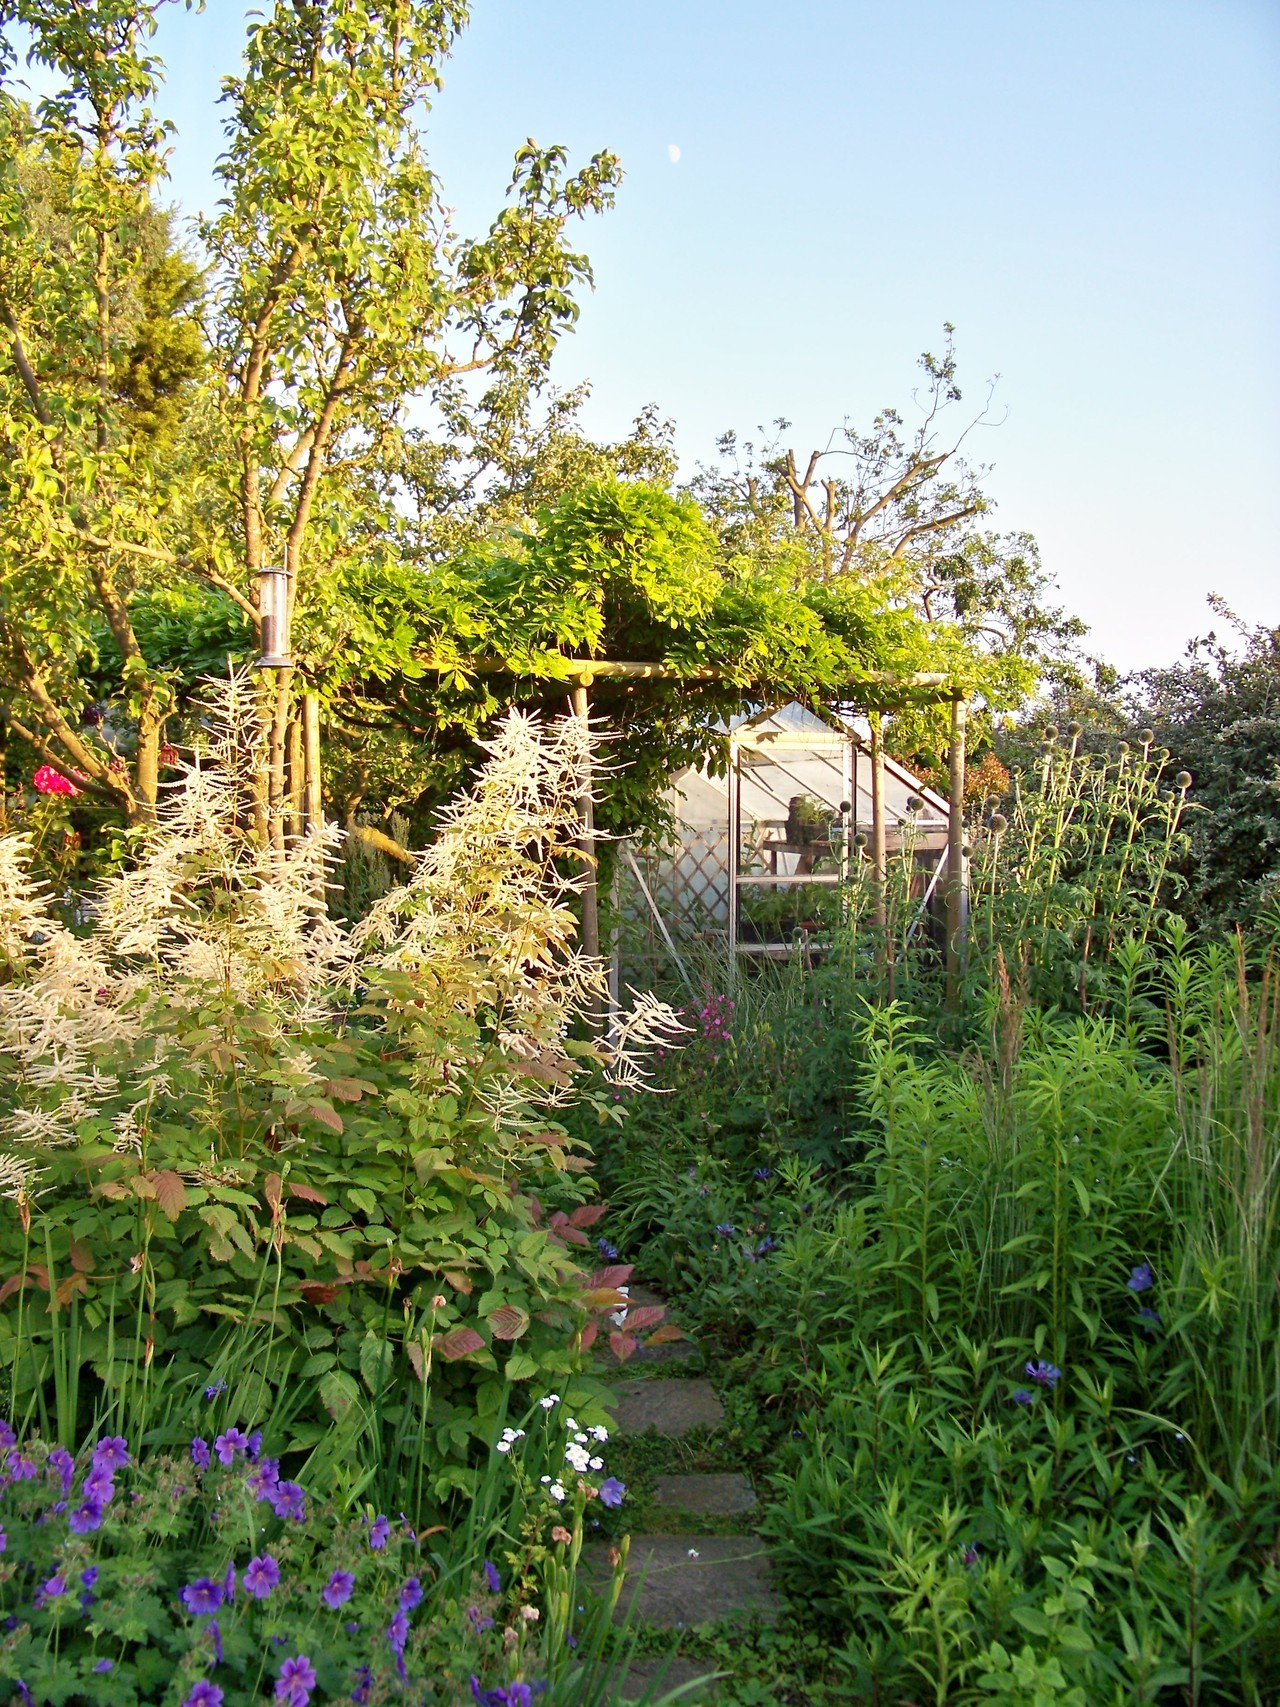 28th June 2012. The path to the greenhouse this evening.